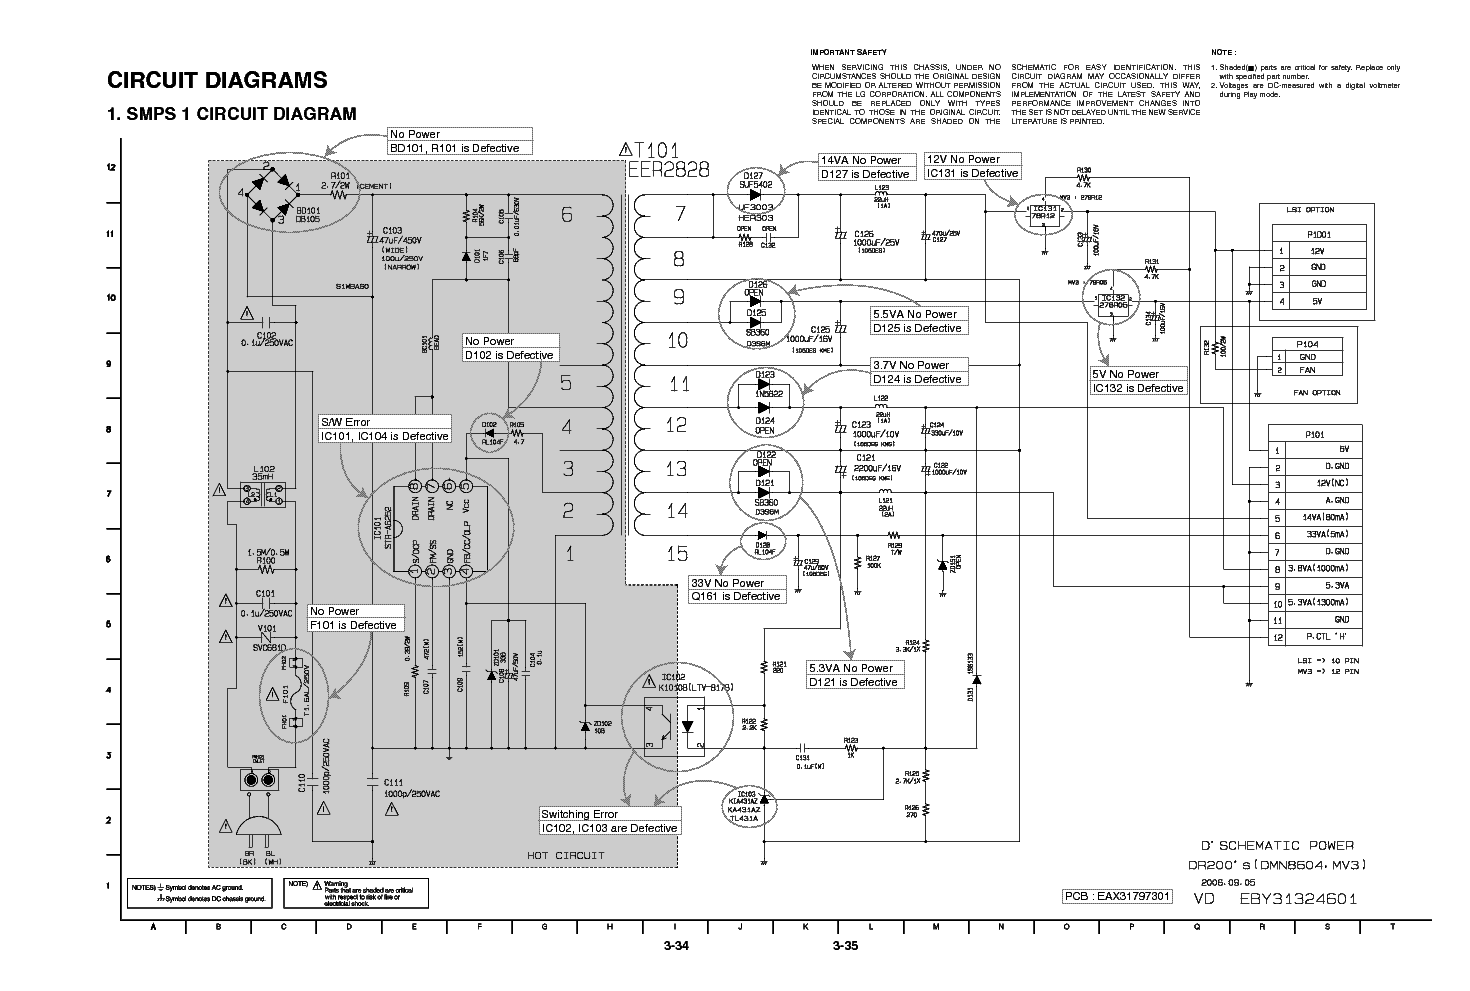 LG EAX31797301 EBY31324601 POWER SUPPLY service manual (1st page)